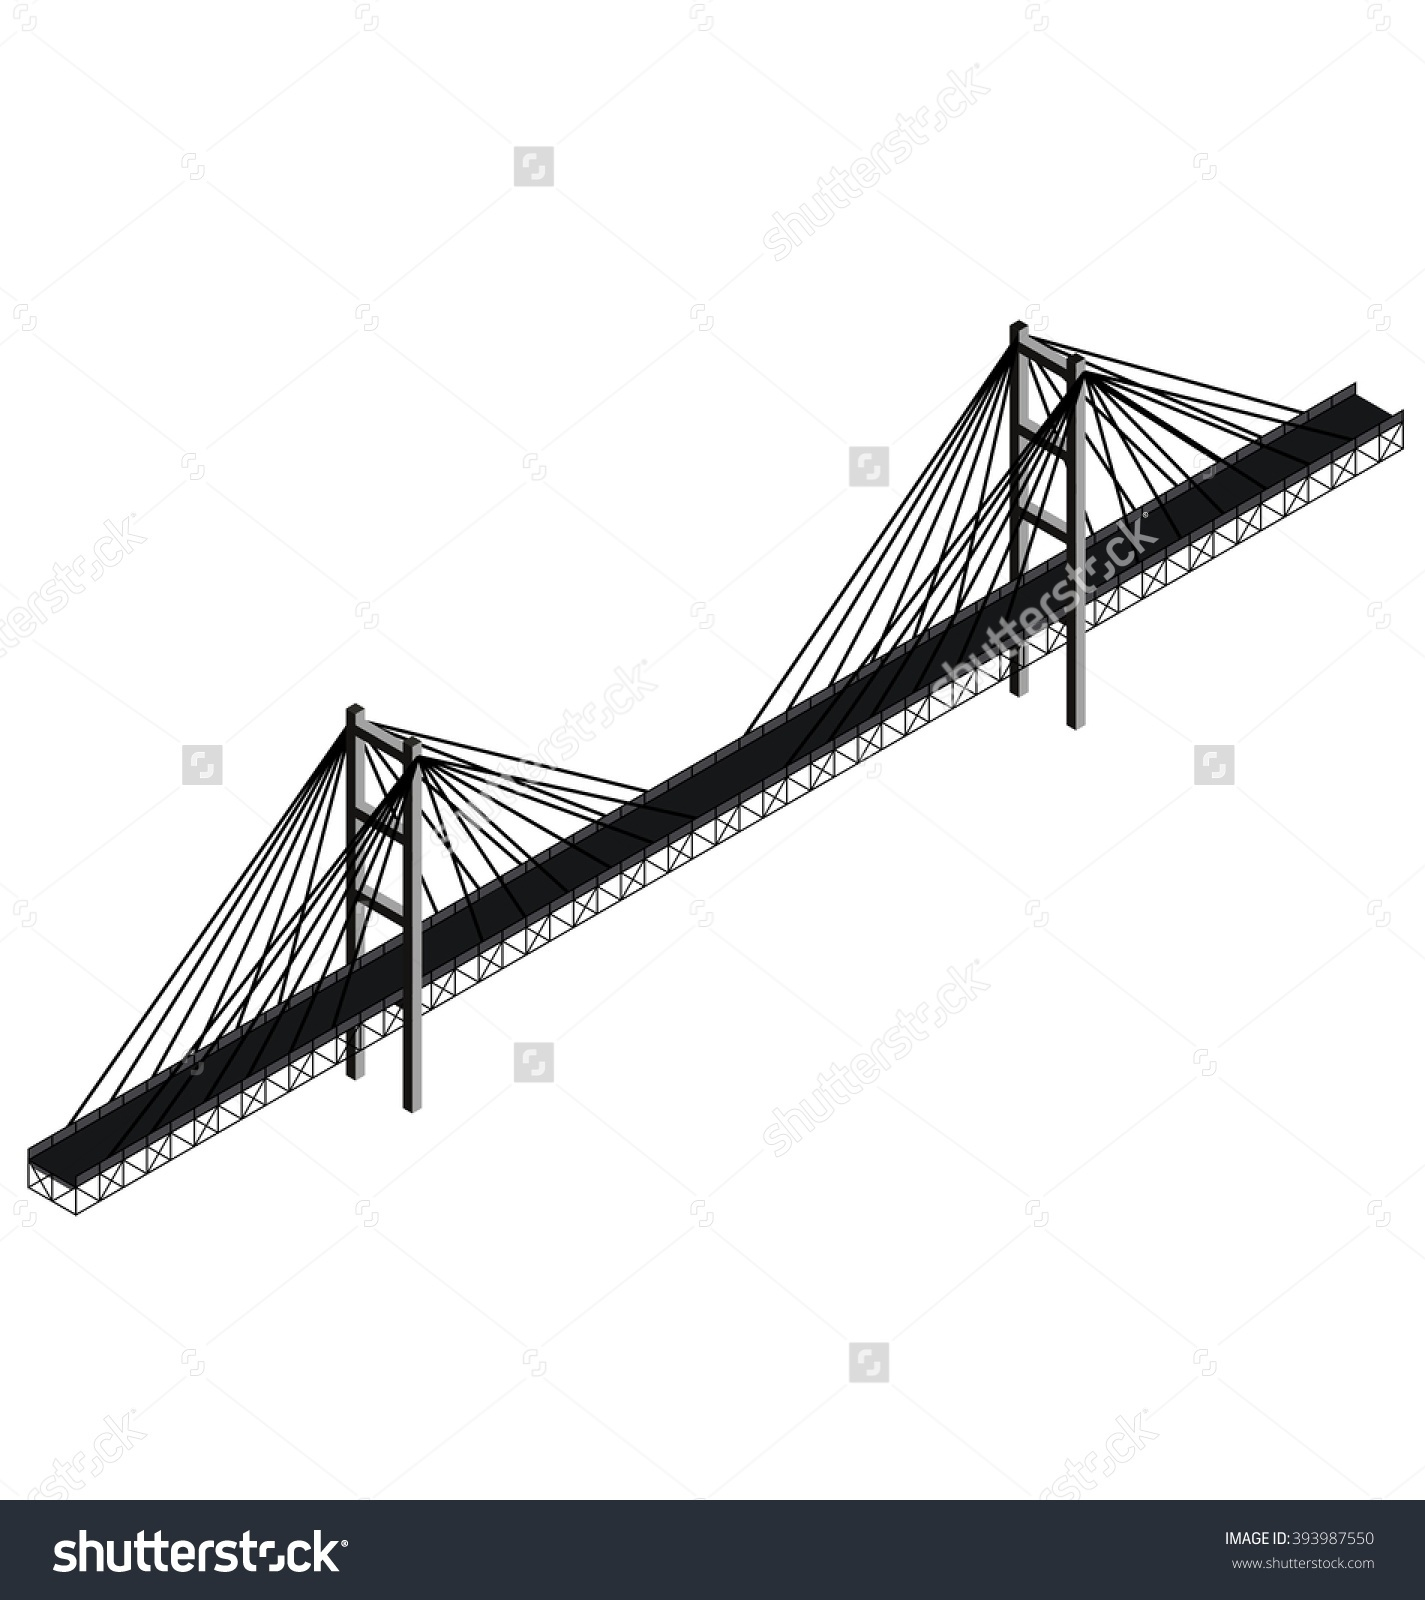 Isometric Cable Stayed Bridge Vector Stock Vector 393987550.